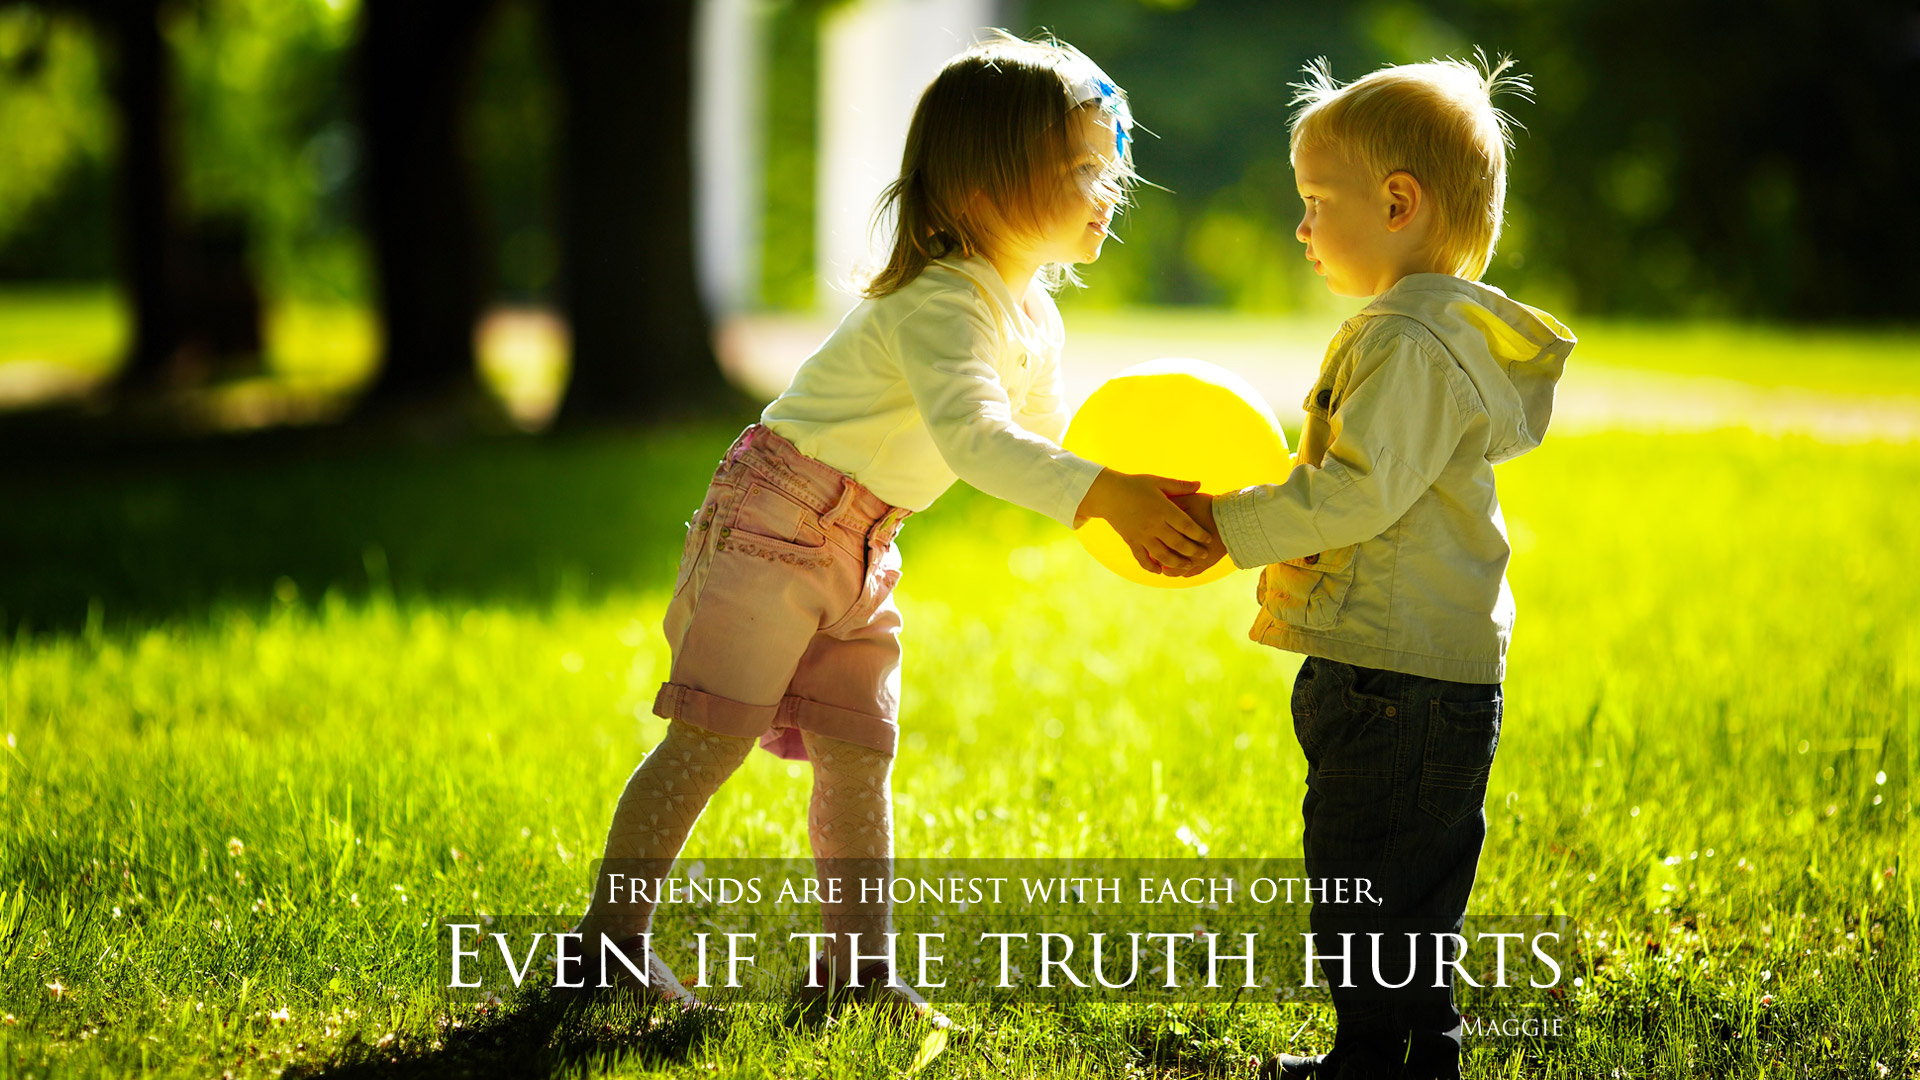 Friendship quotes 2014 wallpaper high definition high quality friendship quotes 2014 altavistaventures Image collections